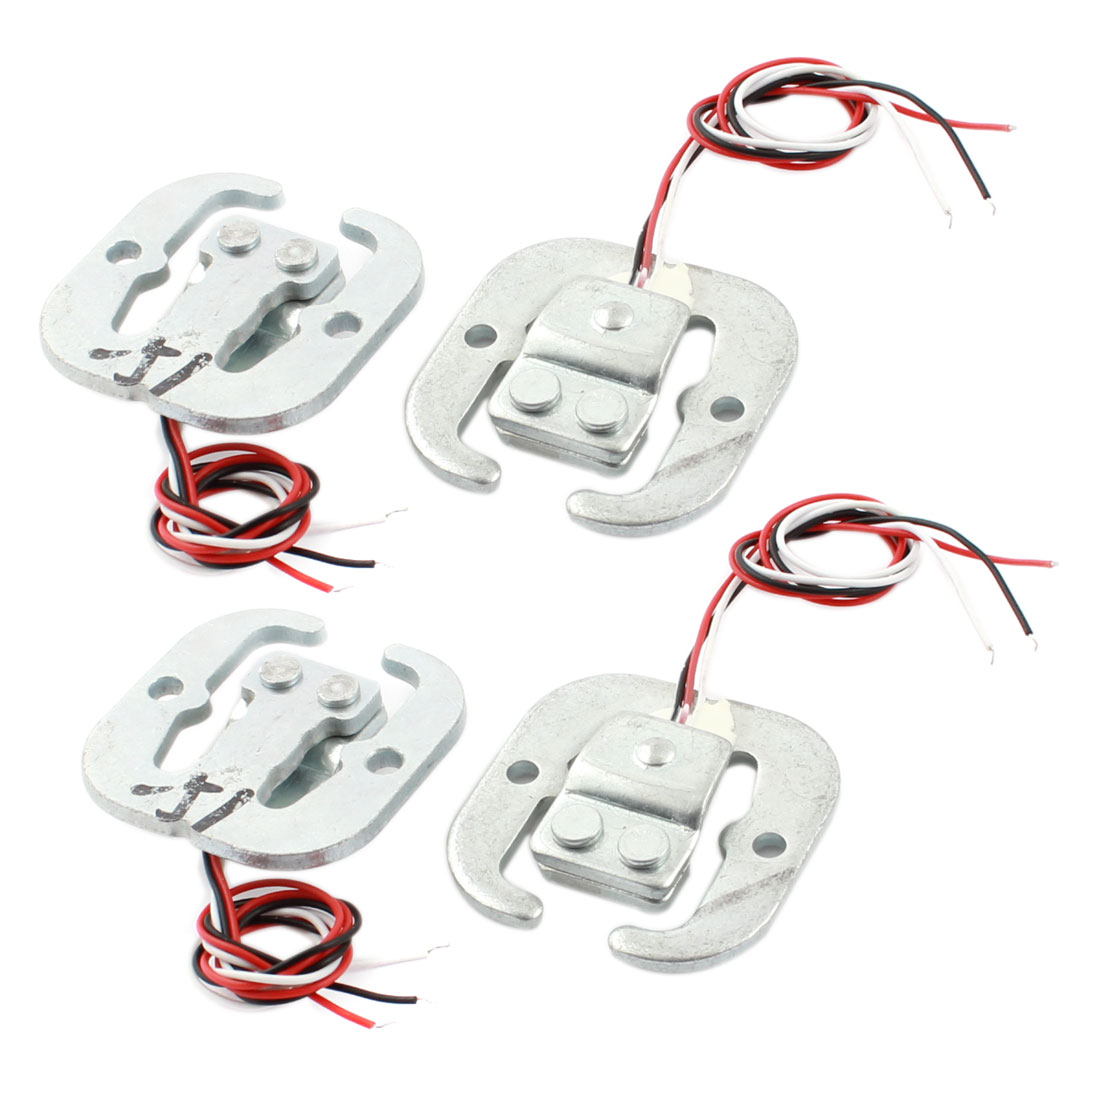 "4Pcs 6"" 3-Wire Half Bridge Type Body Load Cell Scale Electronic Weighing Sensor 50Kg"